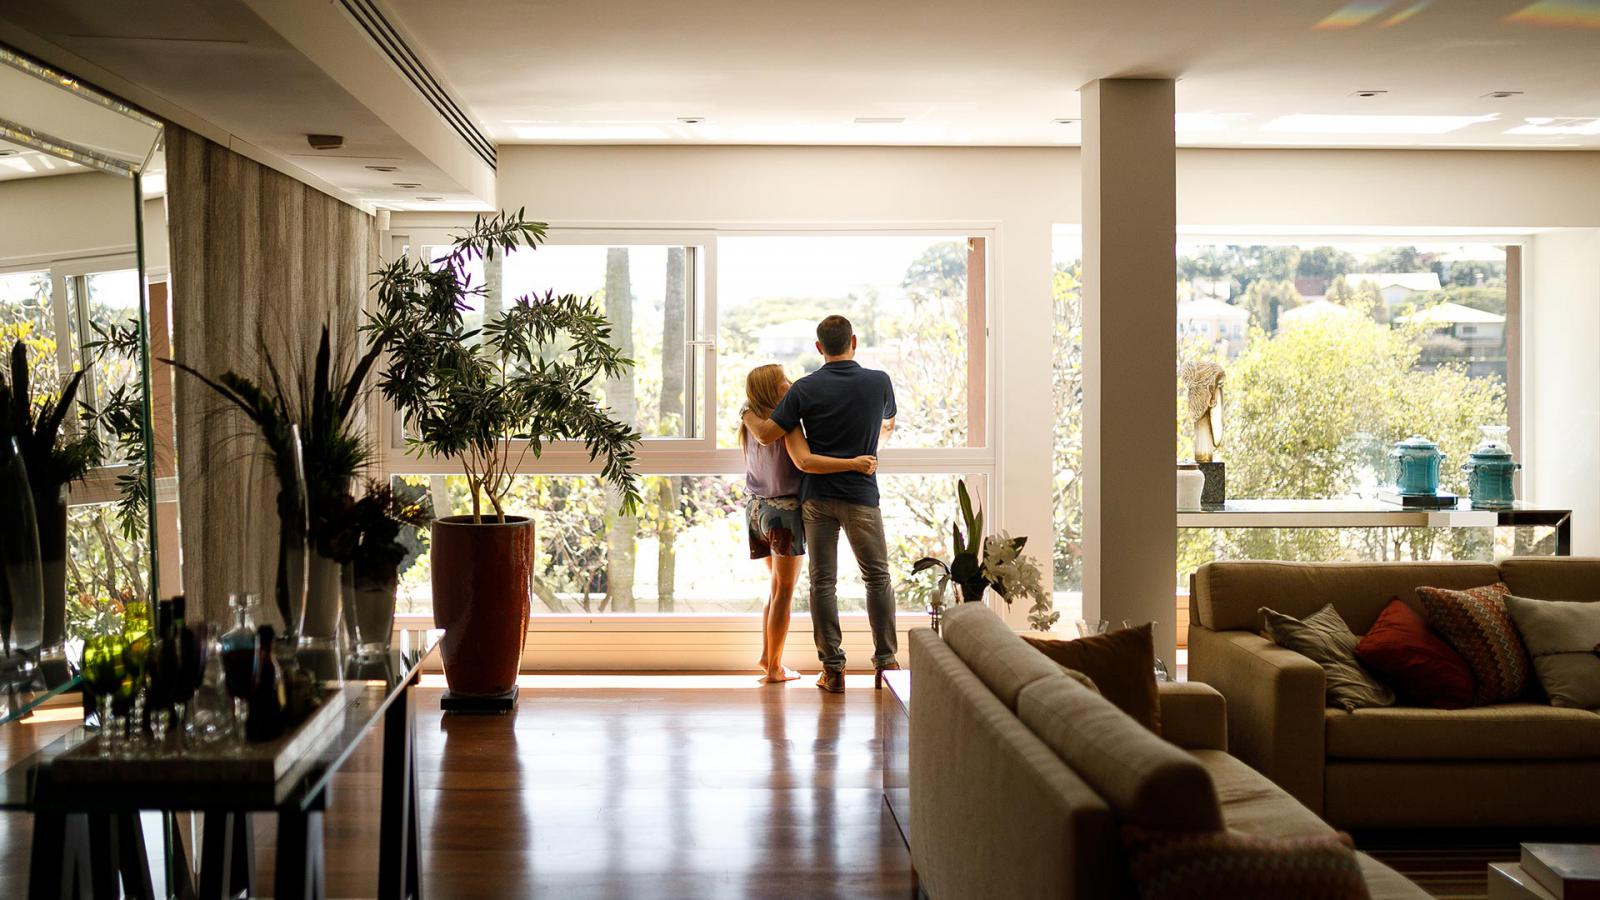 Image of couple in a home